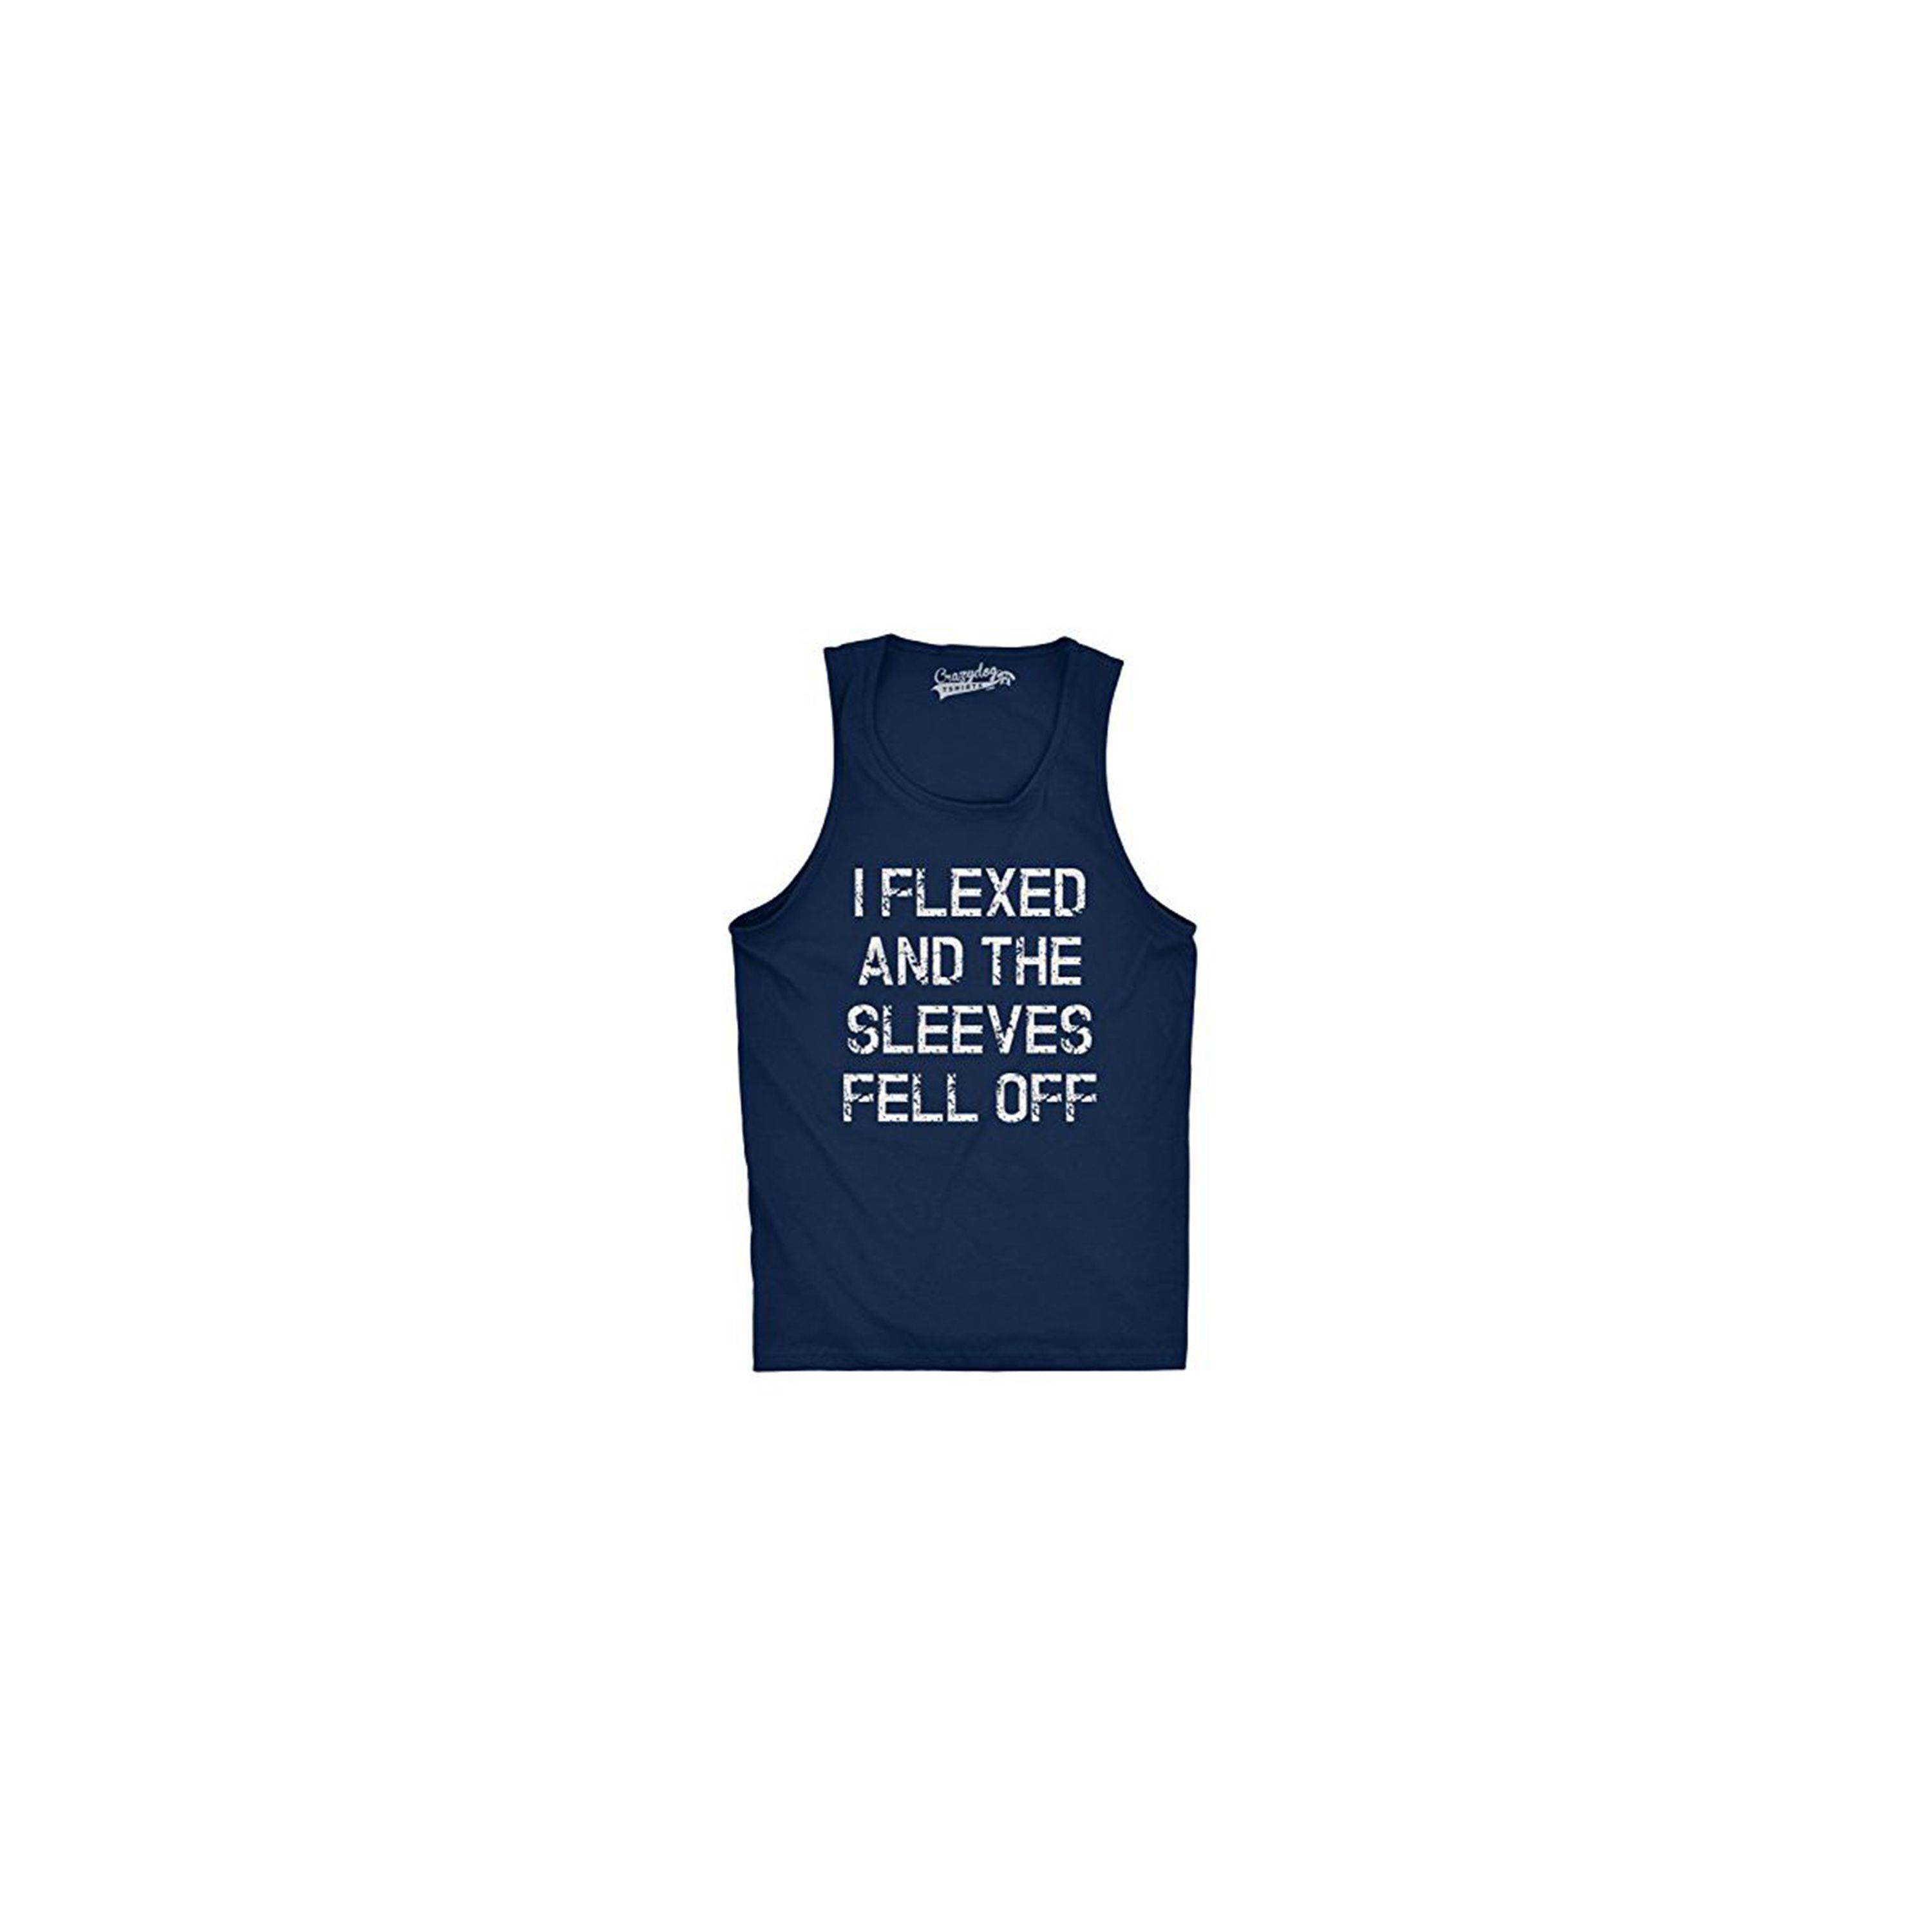 204209d6efb 30 Funny Christmas Gift Ideas - Hilarious Gifts for Friends 2018